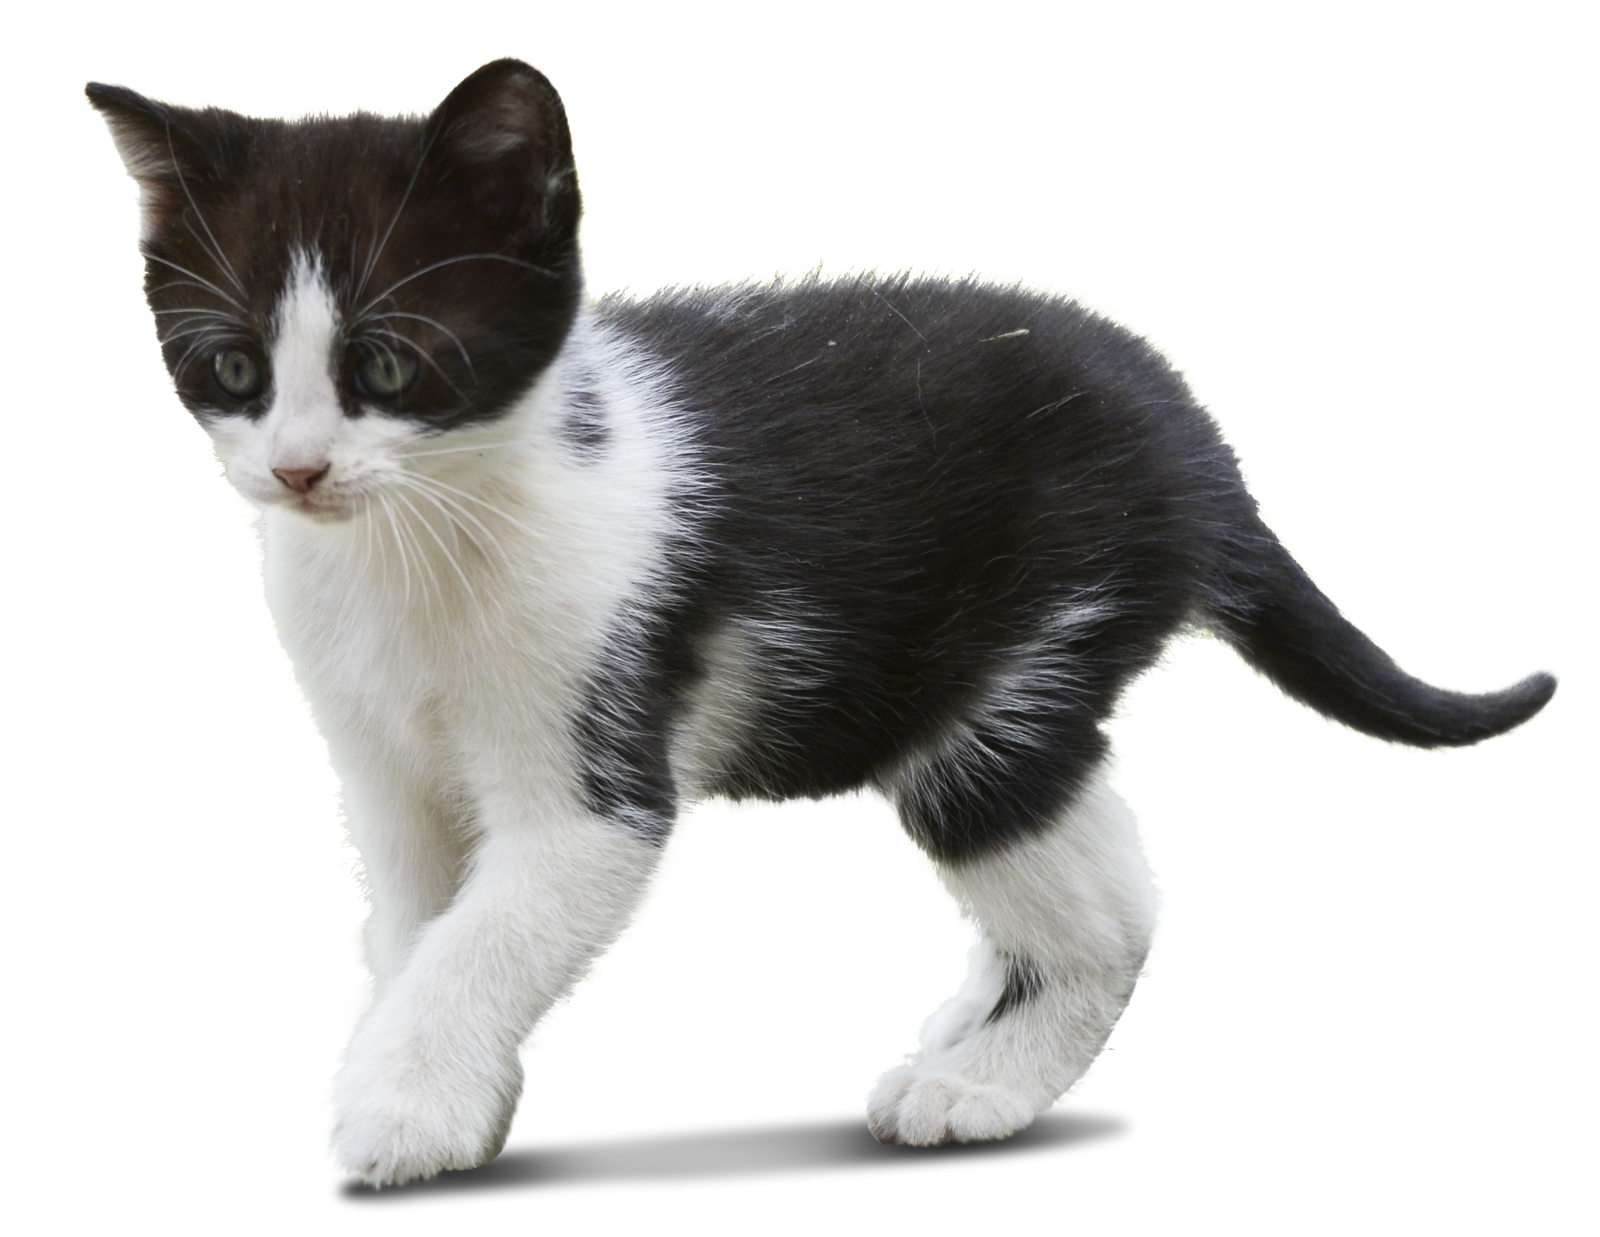 Cat walking png. Cut out kitty architecture